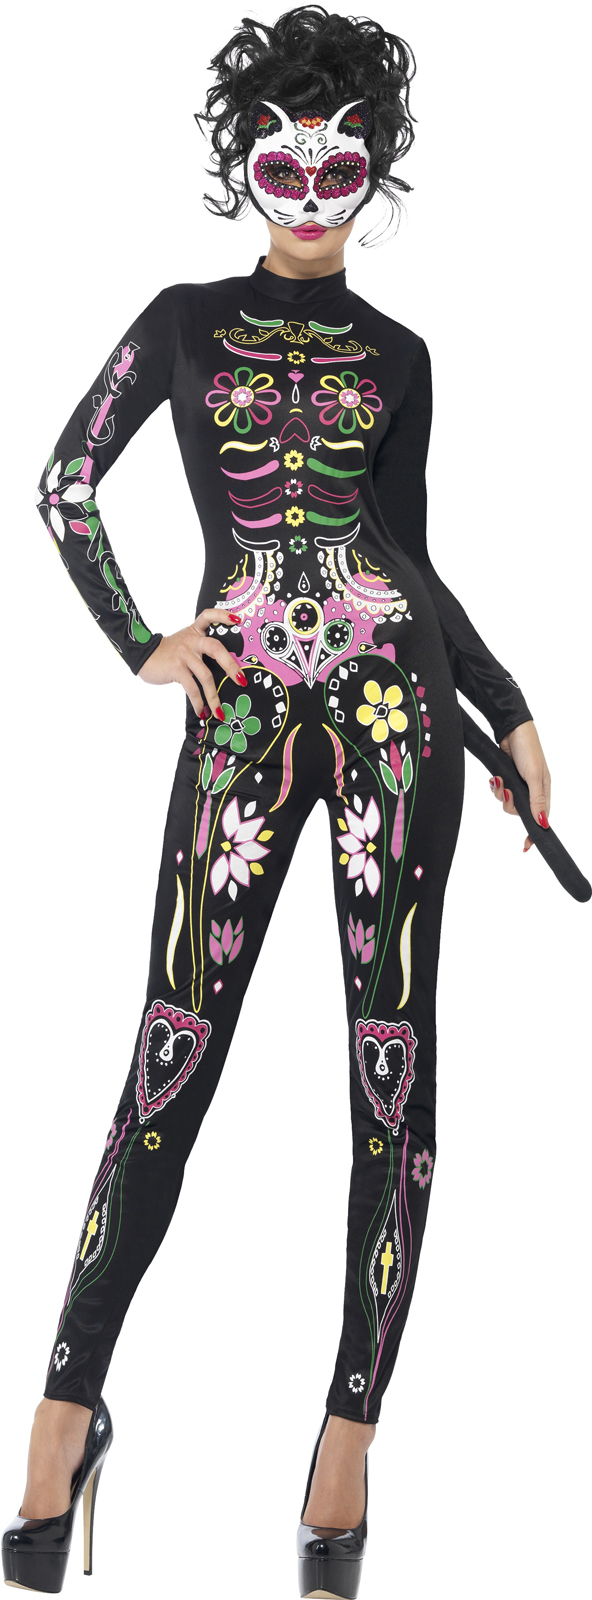 Day of the Dead: Sugar Skull Cat Costume For Women | BuyCostumes.com